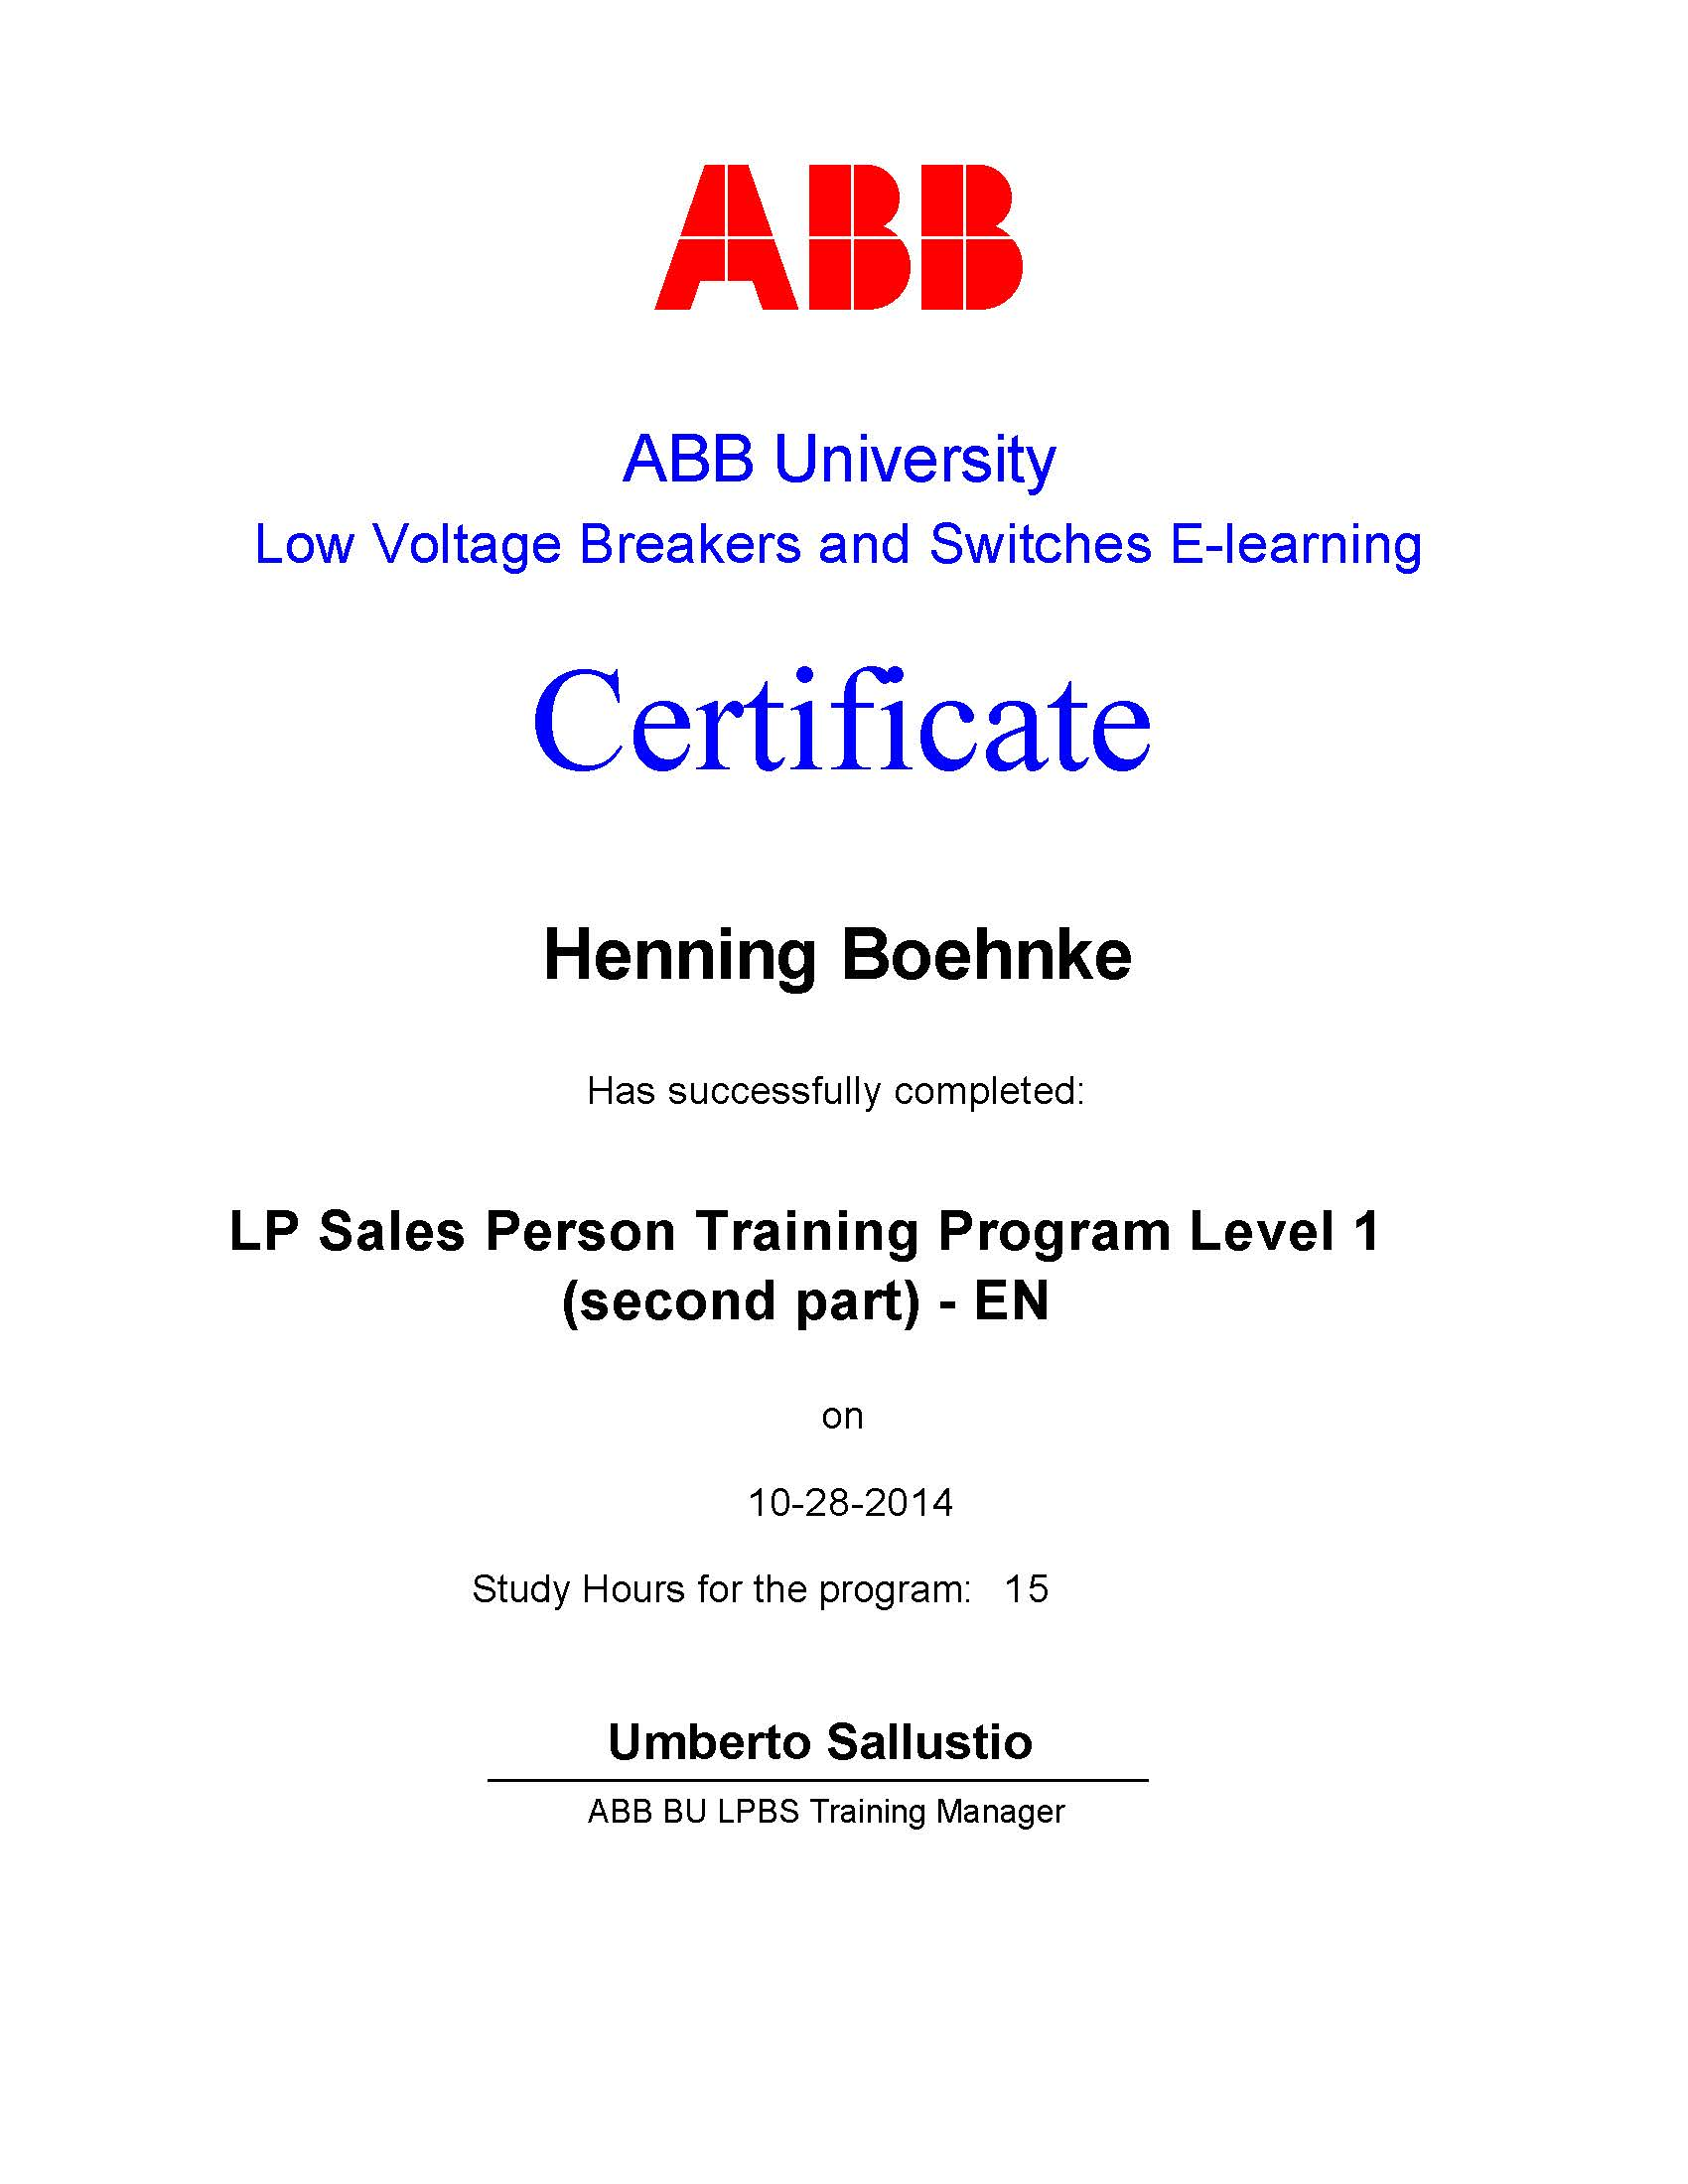 LP Sales Person Training Program Level 1 (Second Part)